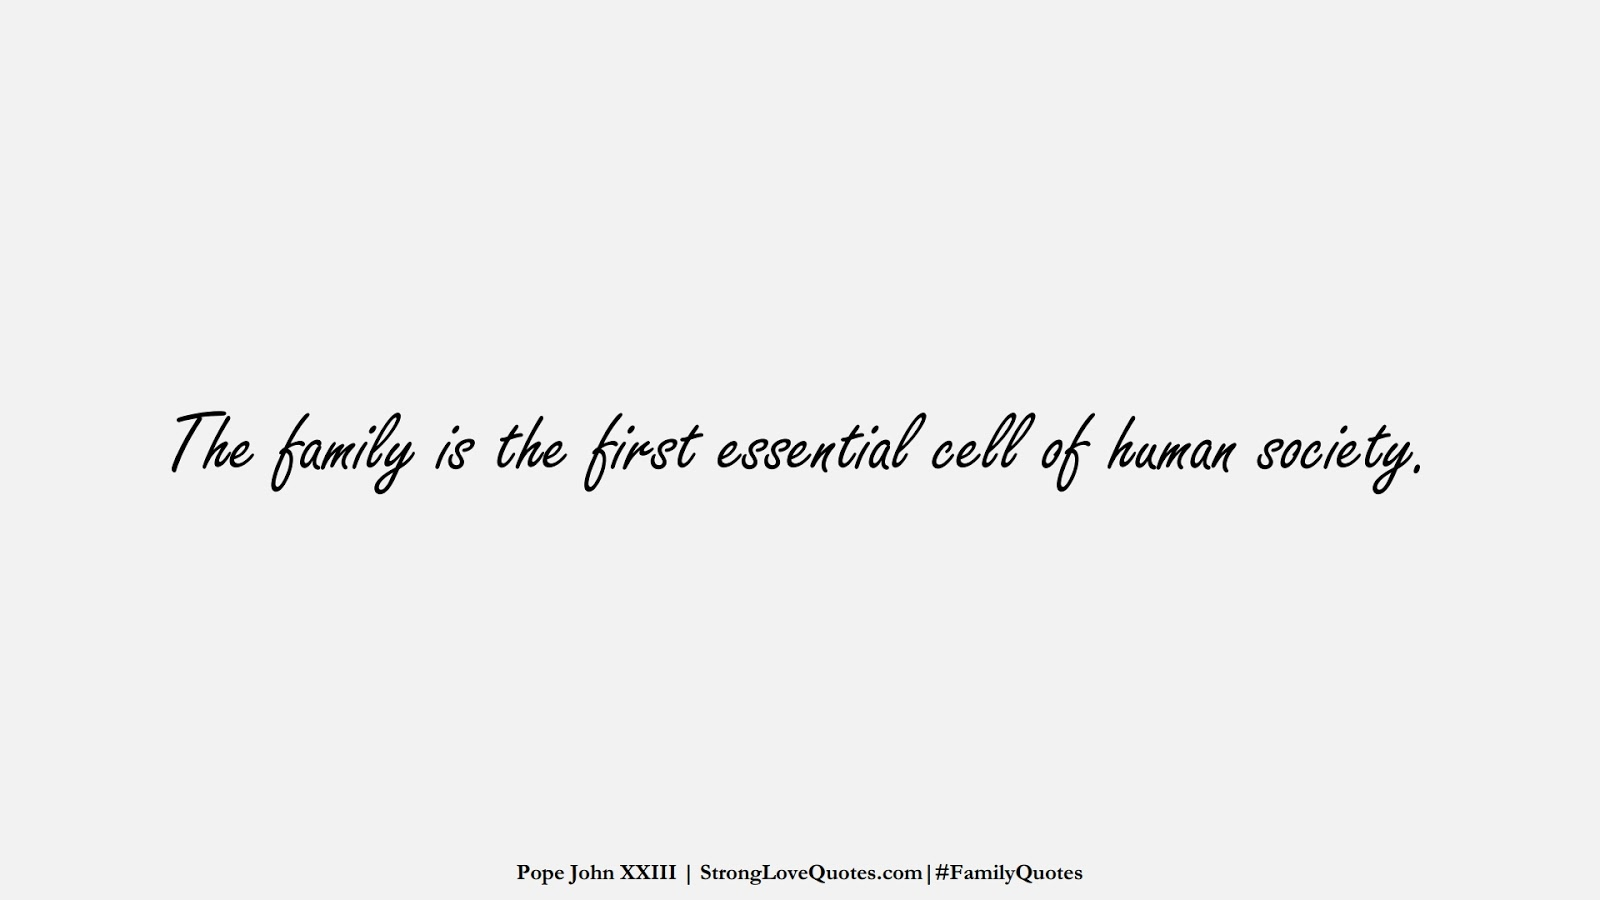 The family is the first essential cell of human society. (Pope John XXIII);  #FamilyQuotes